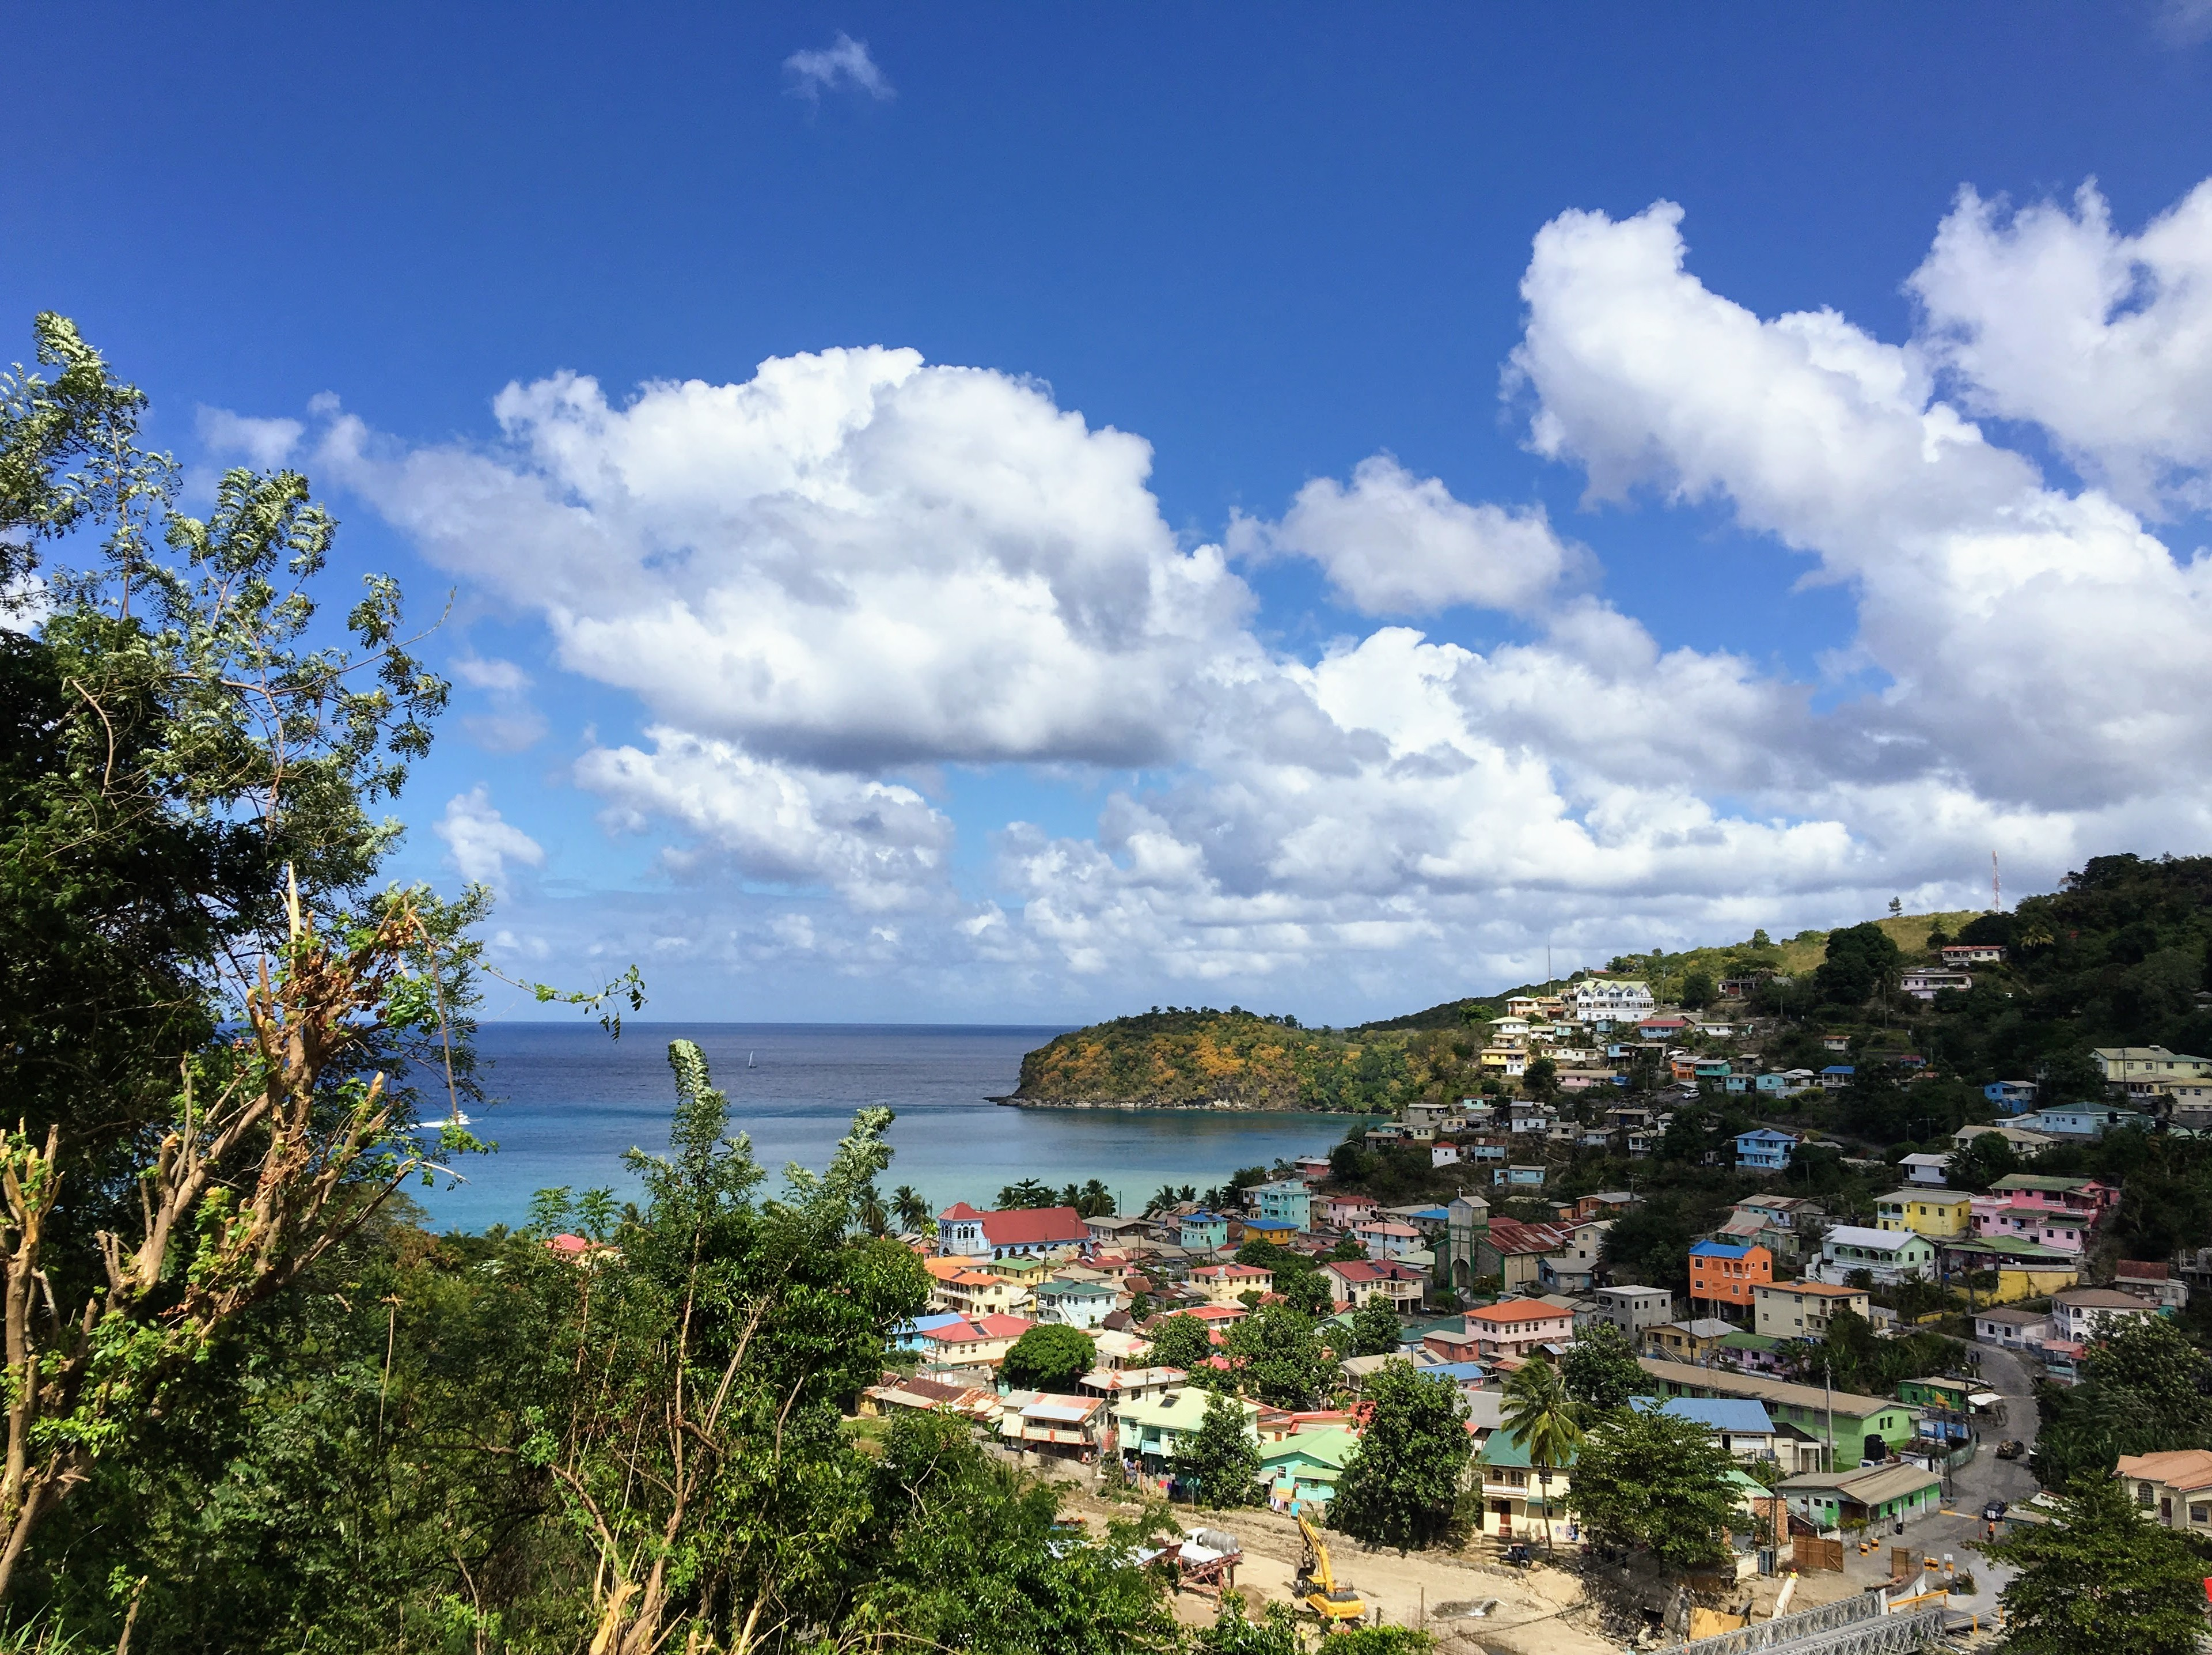 Small town on the island of Saint Lucia